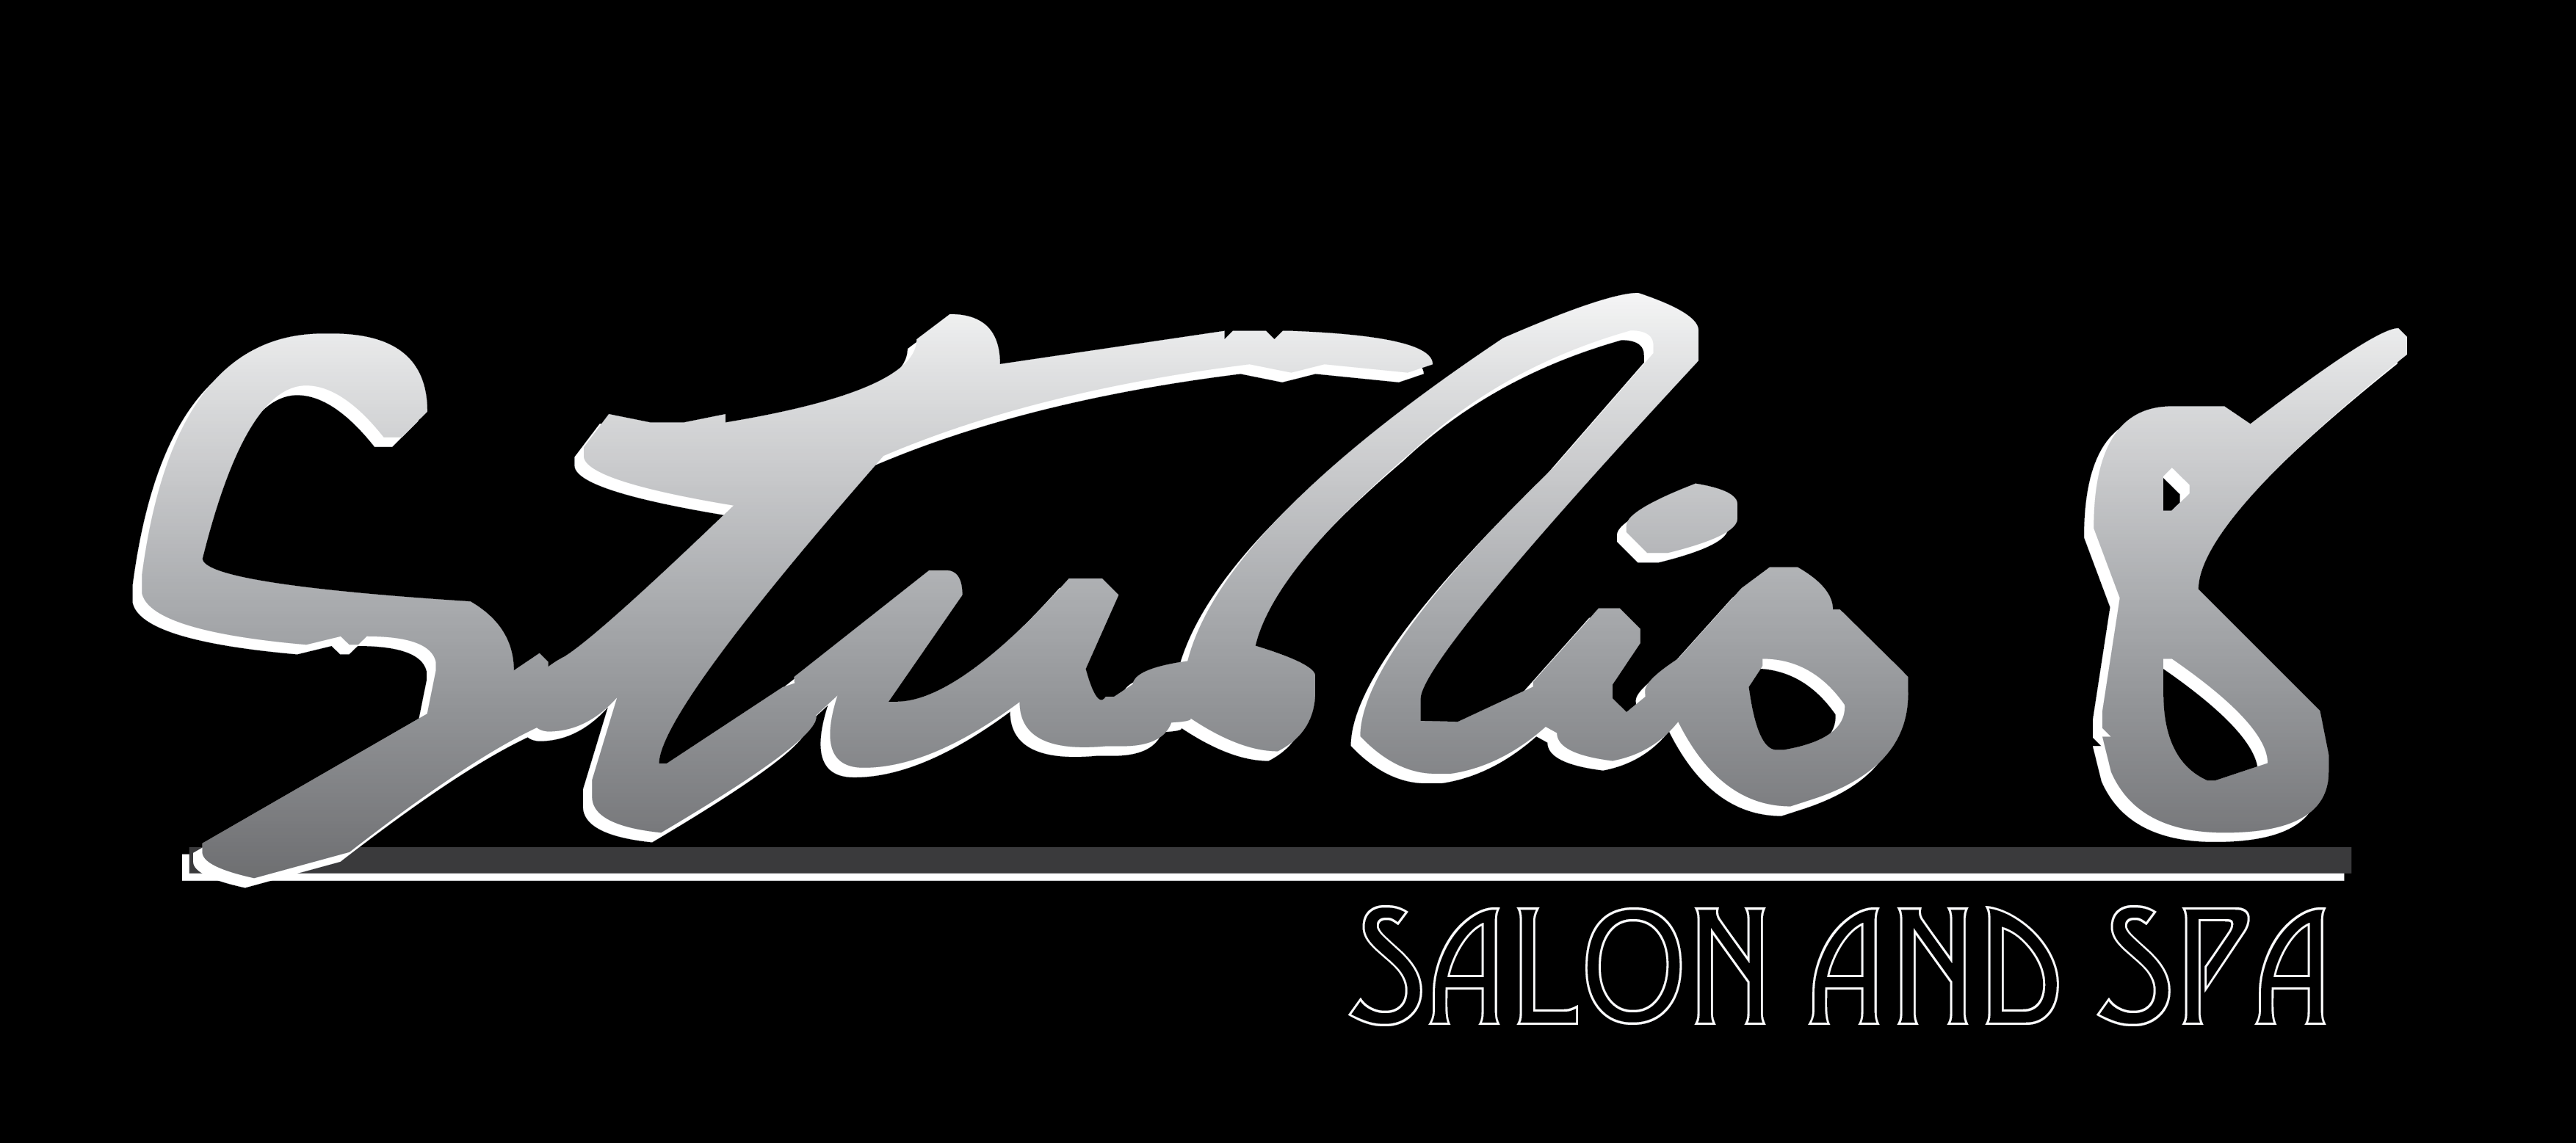 Logo Design by Alexan Torio - Entry No. 45 in the Logo Design Contest Captivating Logo Design for studio eight salon & spa.